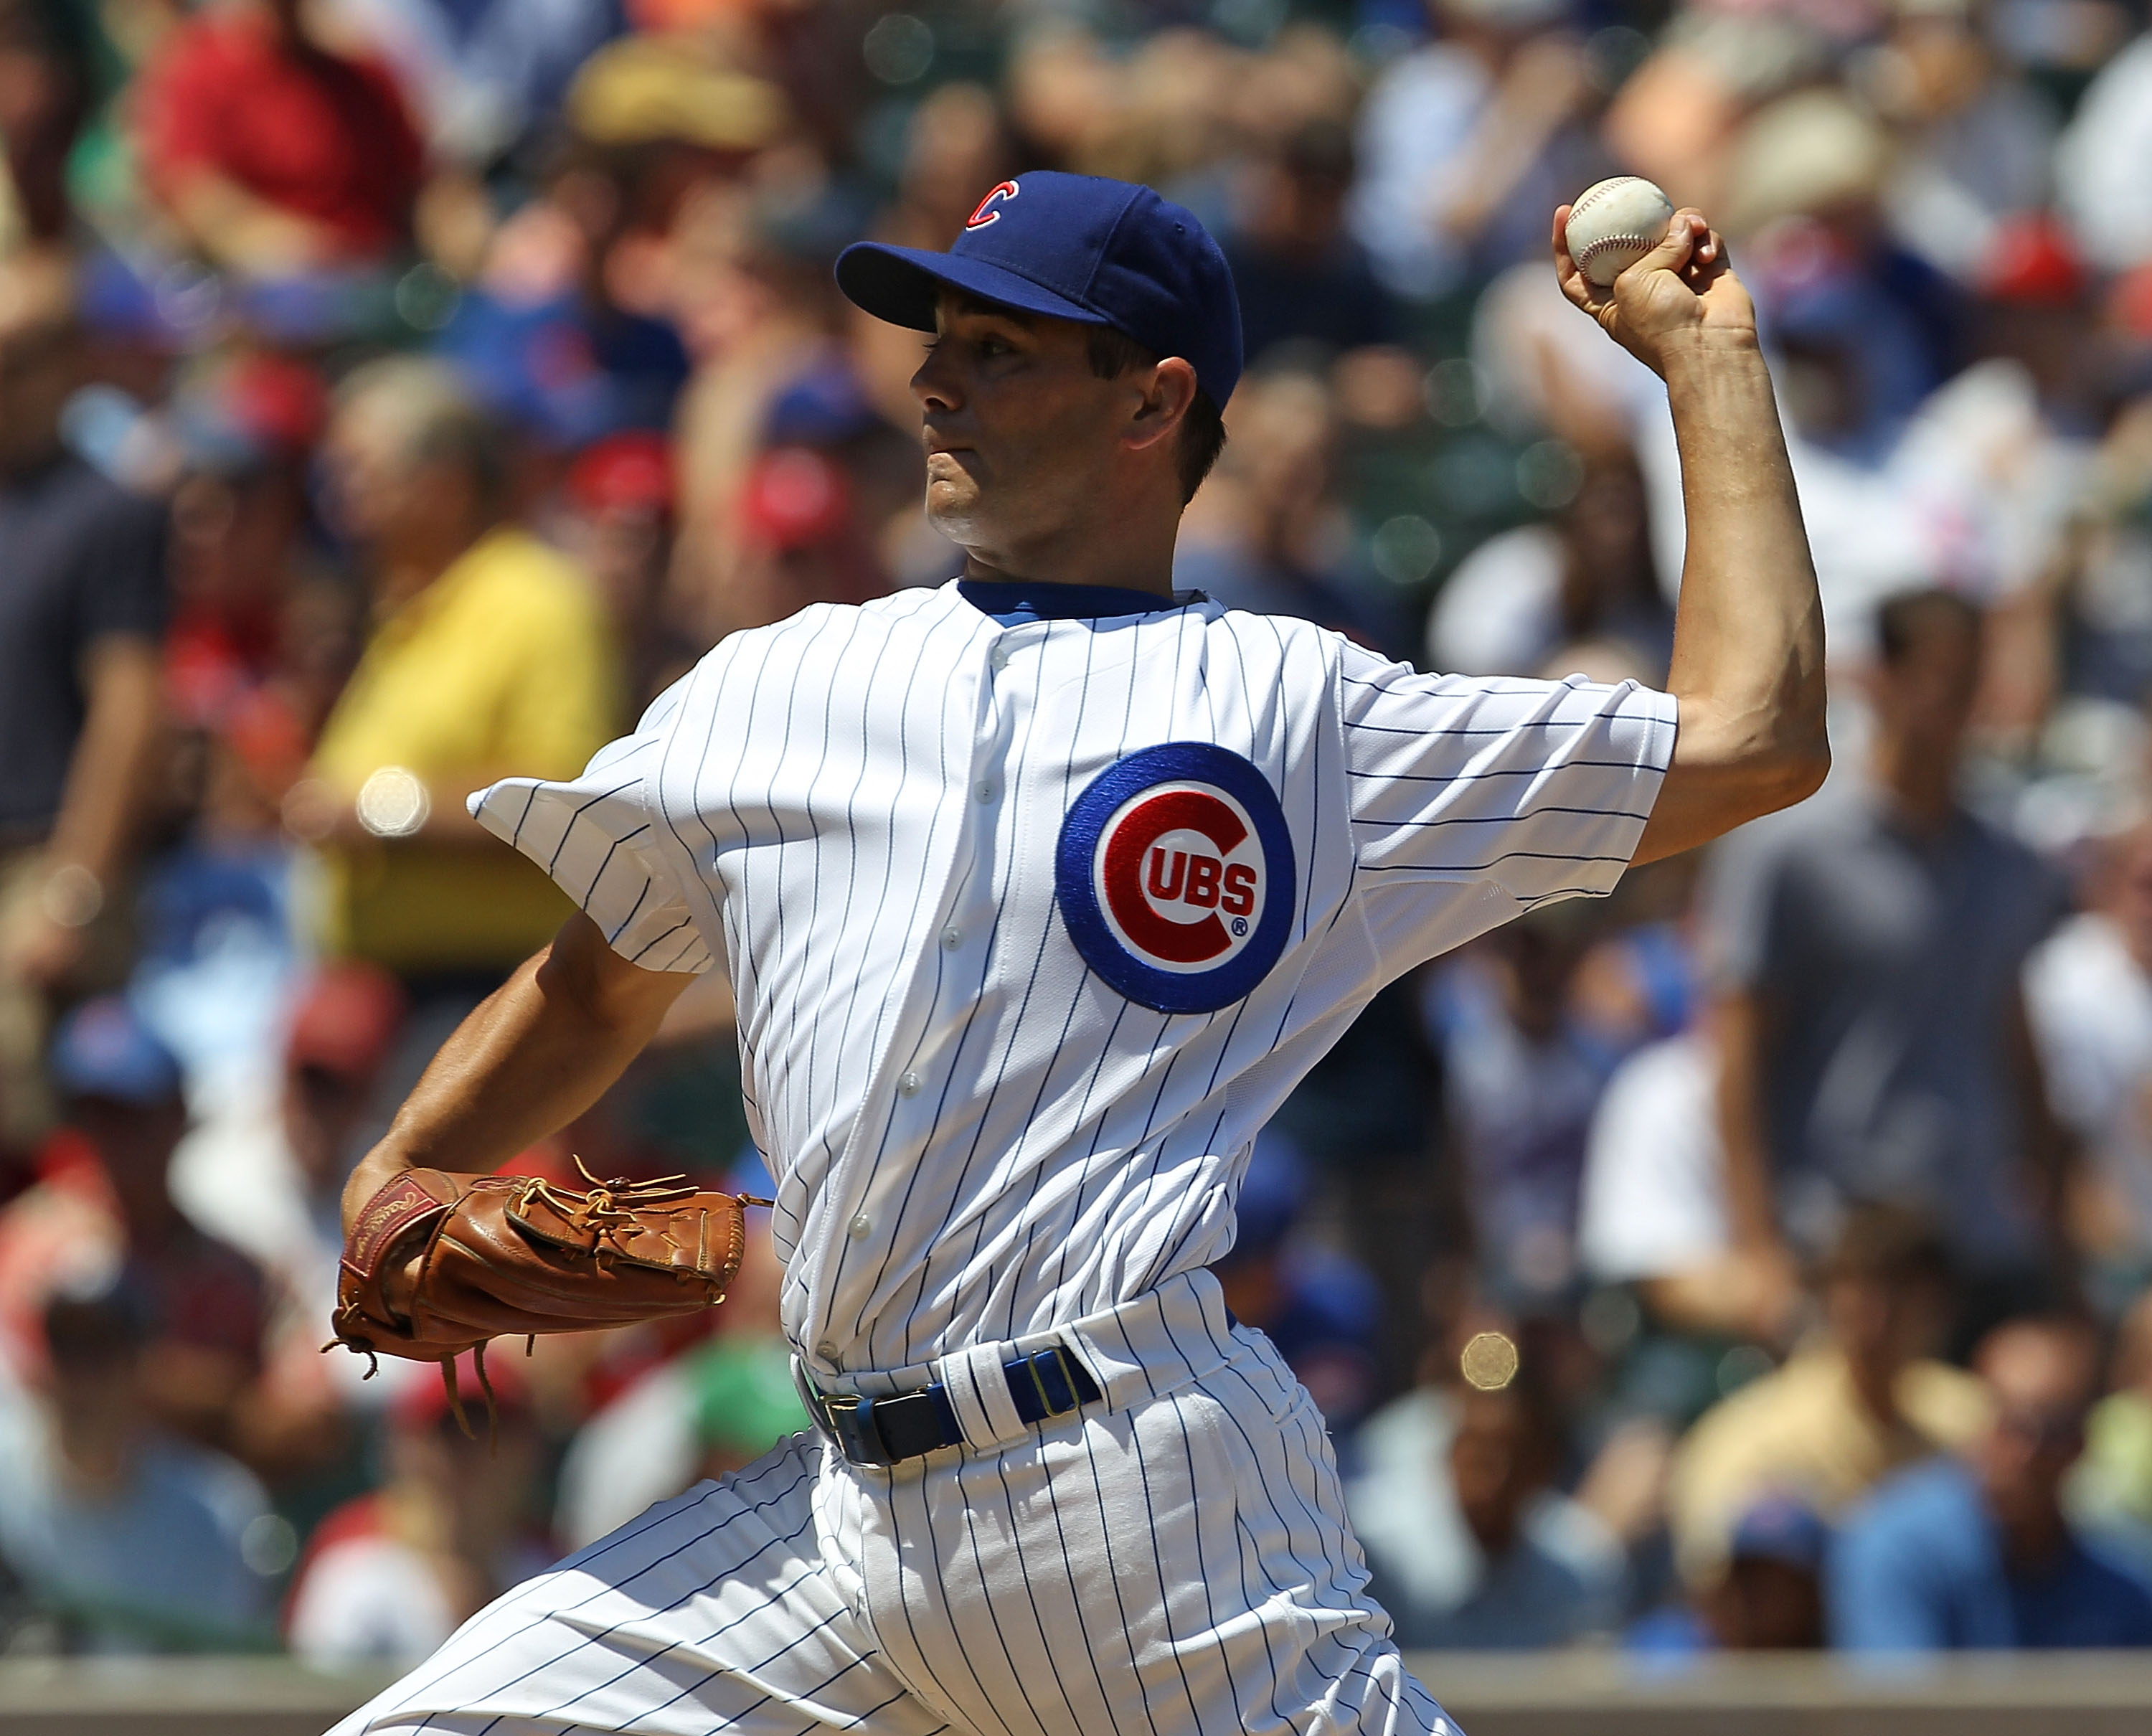 CHICAGO - JULY 16: Starting pitcher Ted Lilly #30 of the Chicago Cubs delivers the ball against the Philadelphia Phillies at Wrigley Field on July 16, 2010 in Chicago, Illinois. The Cubs defeated the Phillies 4-3. (Photo by Jonathan Daniel/Getty Images)